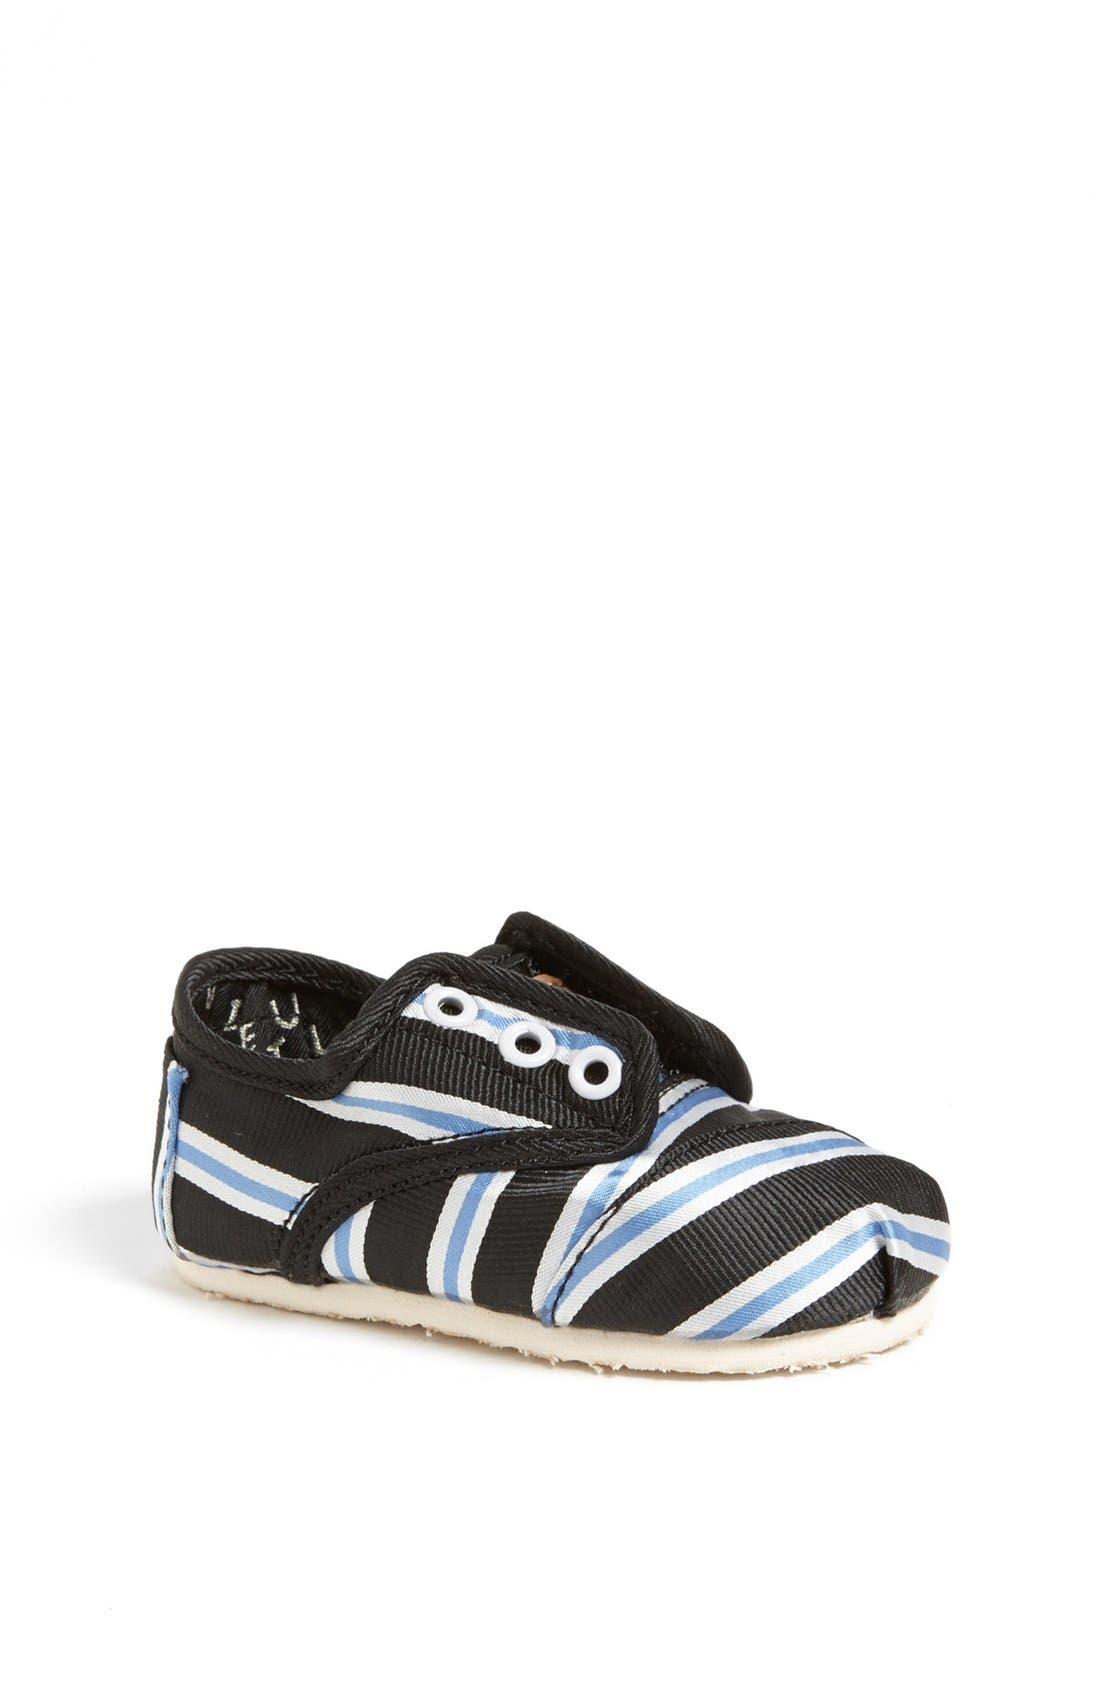 Alternate Image 1 Selected - TOMS 'Tabitha Simmons Cordones - Tiny' Slip-On (Baby, Walker & Toddler)